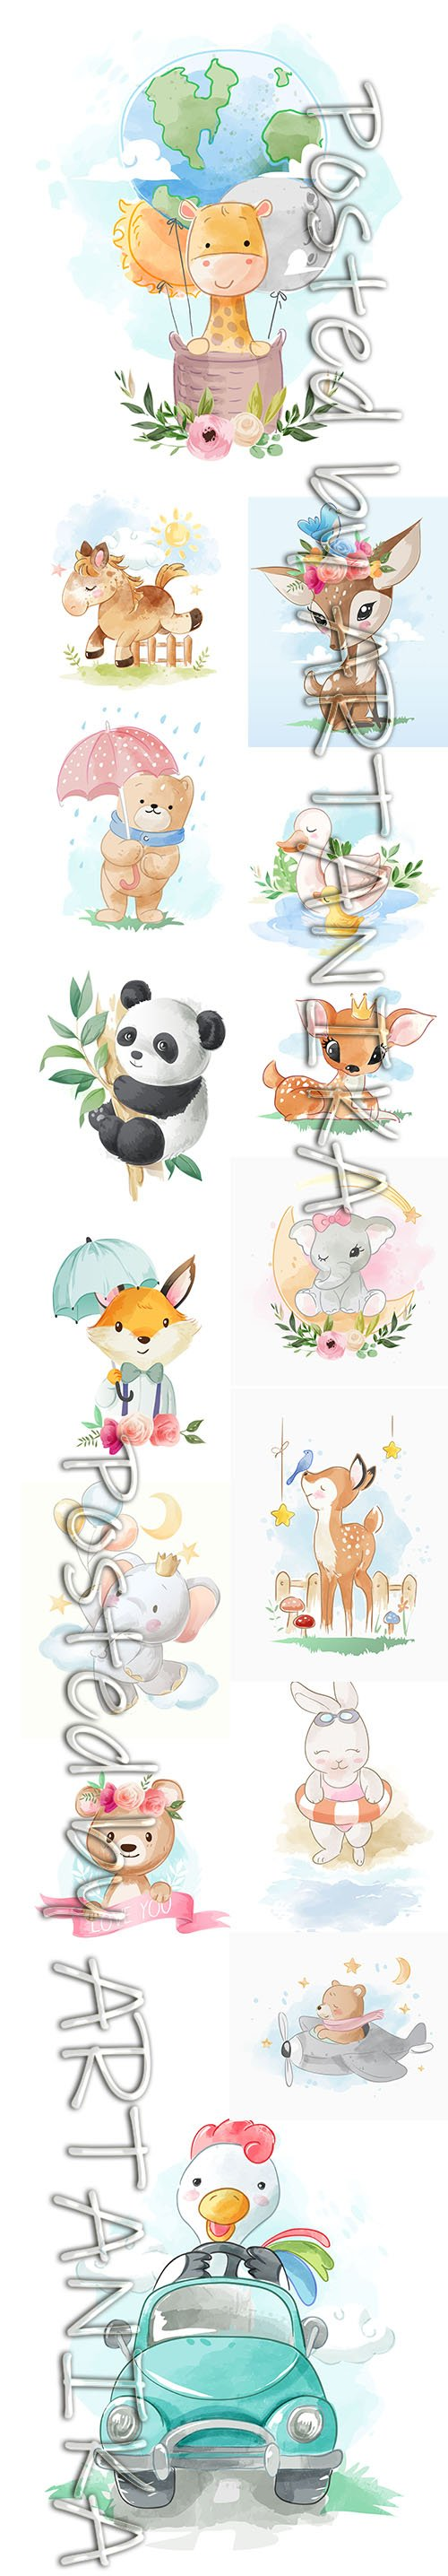 SET of HAND DRAW WATERCOLOR ADORABLE ANIMALS ILLUSTRATIONS VOL 7